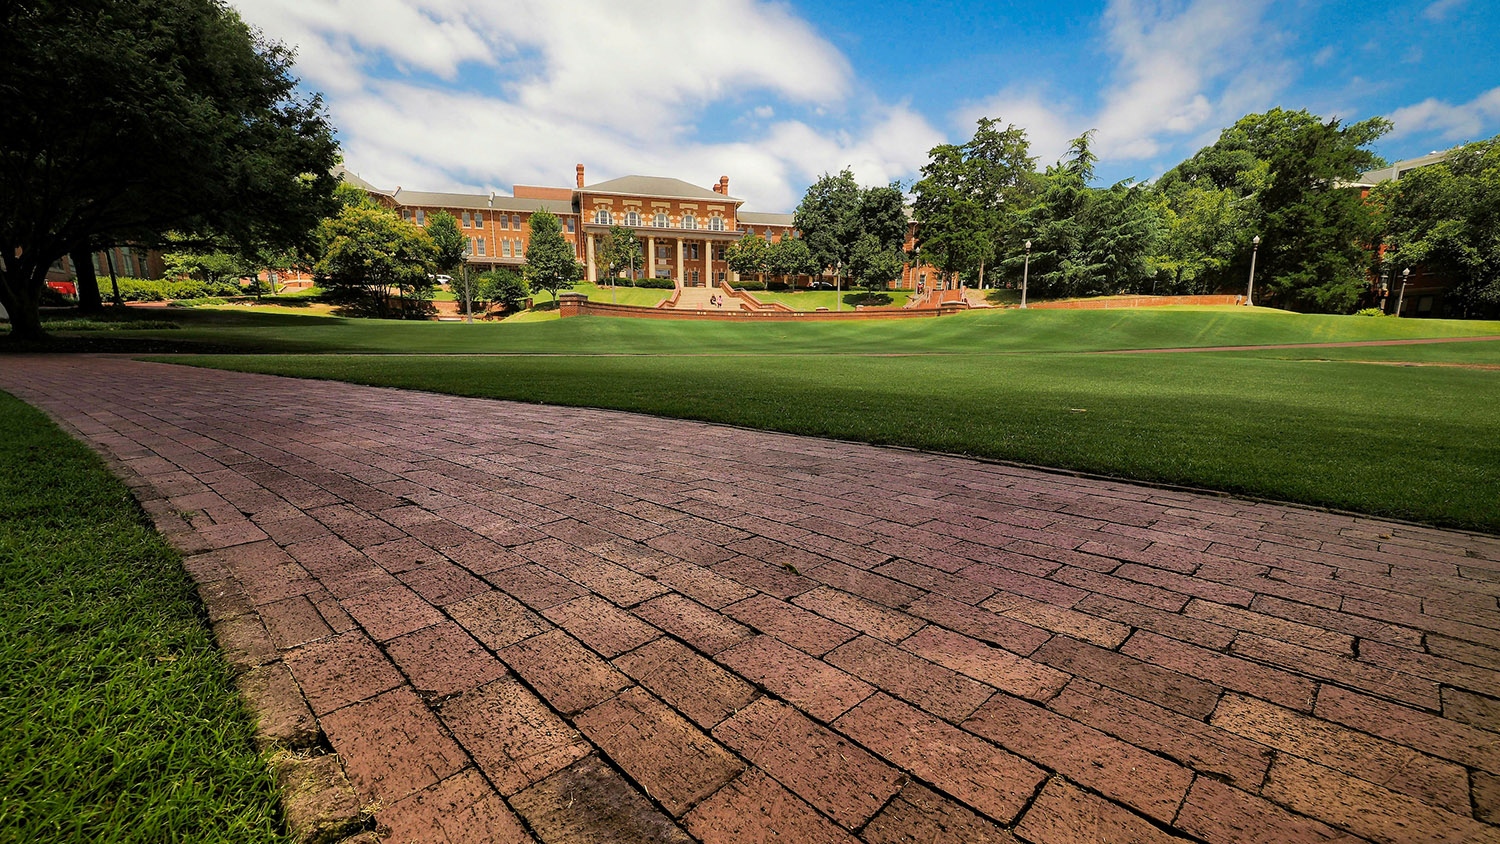 A brick sidewalk/pathway in the middle of the court of North Carolina